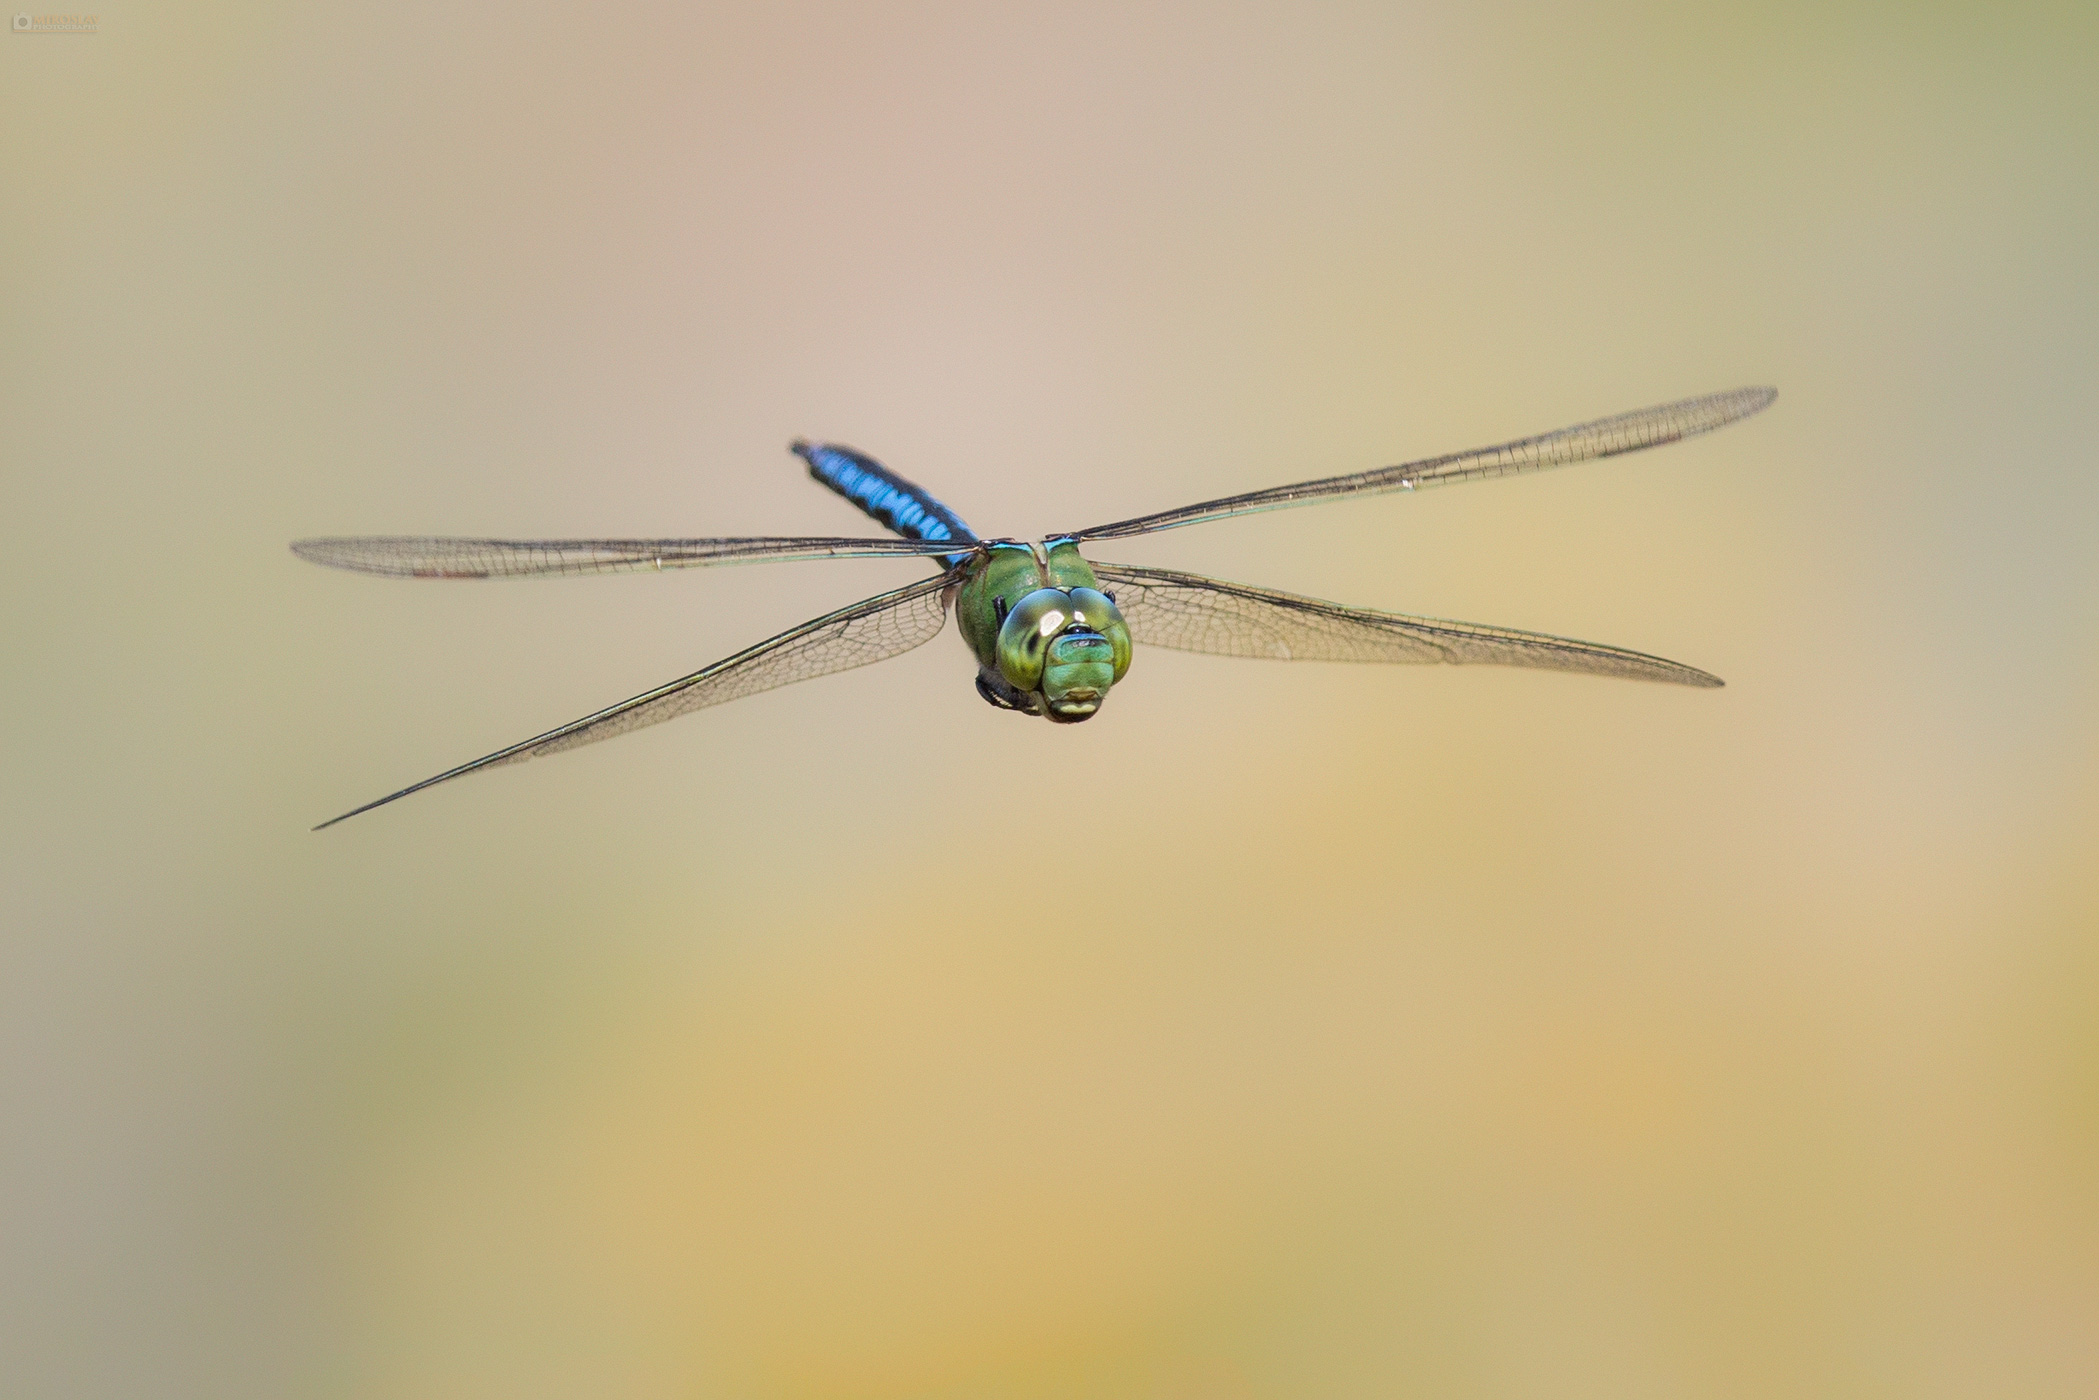 The Blue Emperor Dragonfly (Anax imperator) in flight. Veliki car u letu.